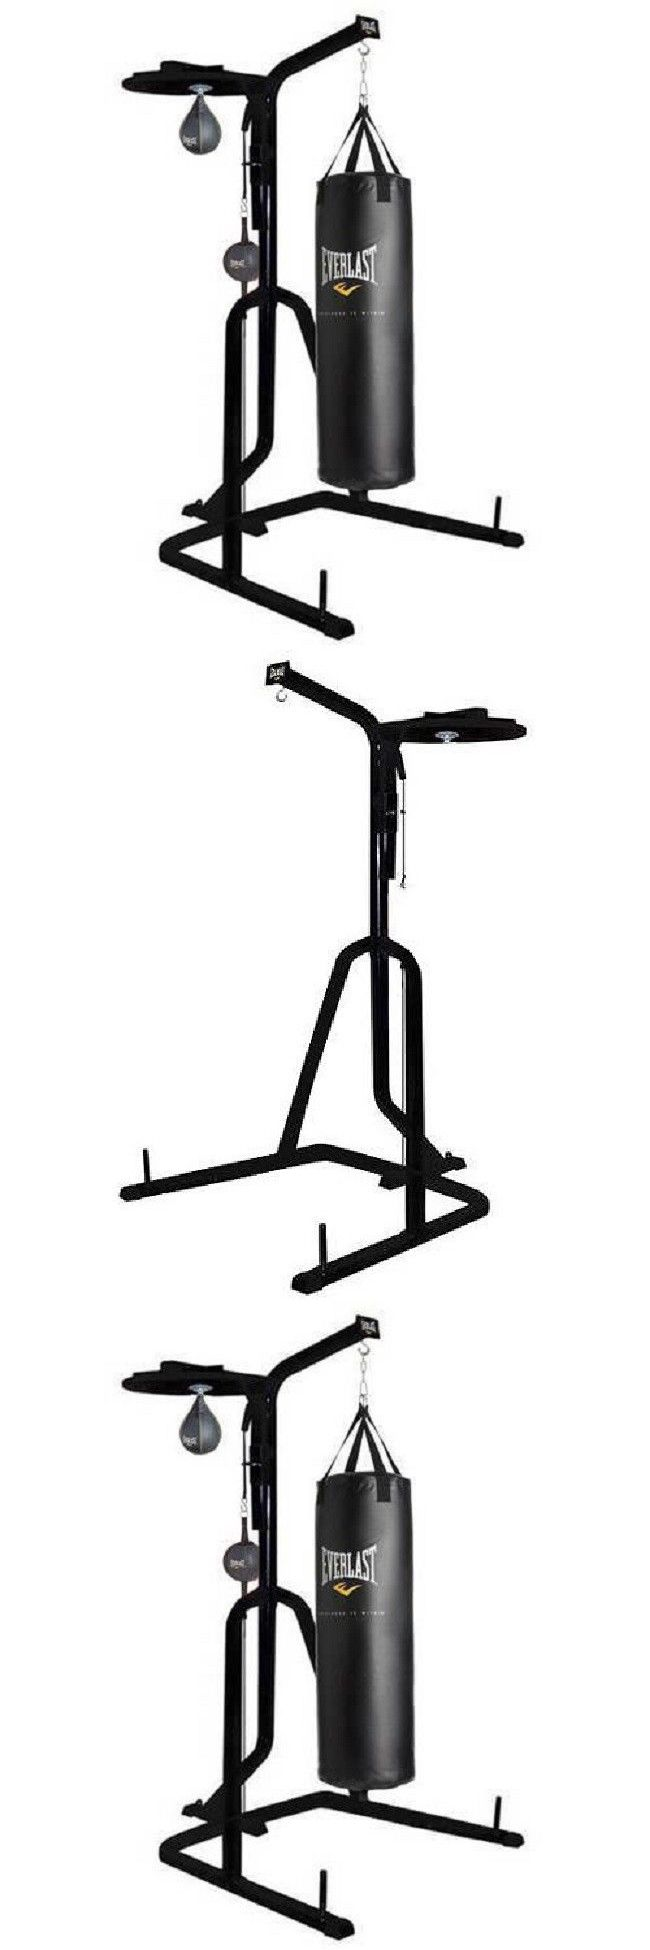 Punching Bags 30101: Heavy Duty 3 Station Punching Bag Stand Boxing Mma Exercise Fitness Equipment -> BUY IT NOW ONLY: $189.05 on eBay!